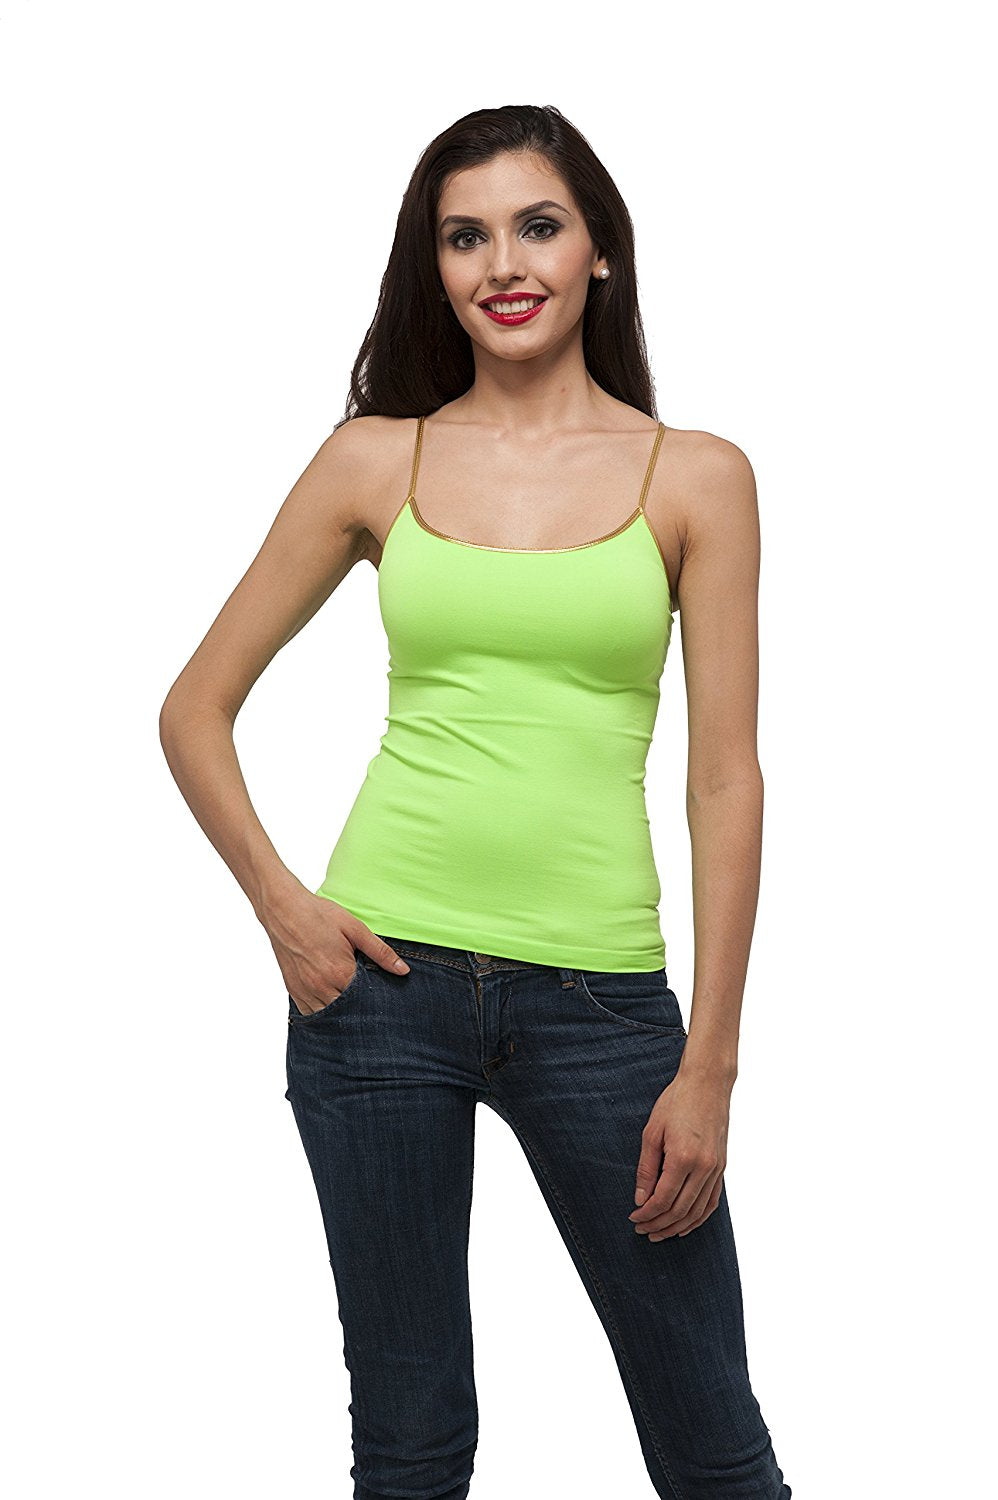 One Size stretchy gold trim spaghetti strap tank top